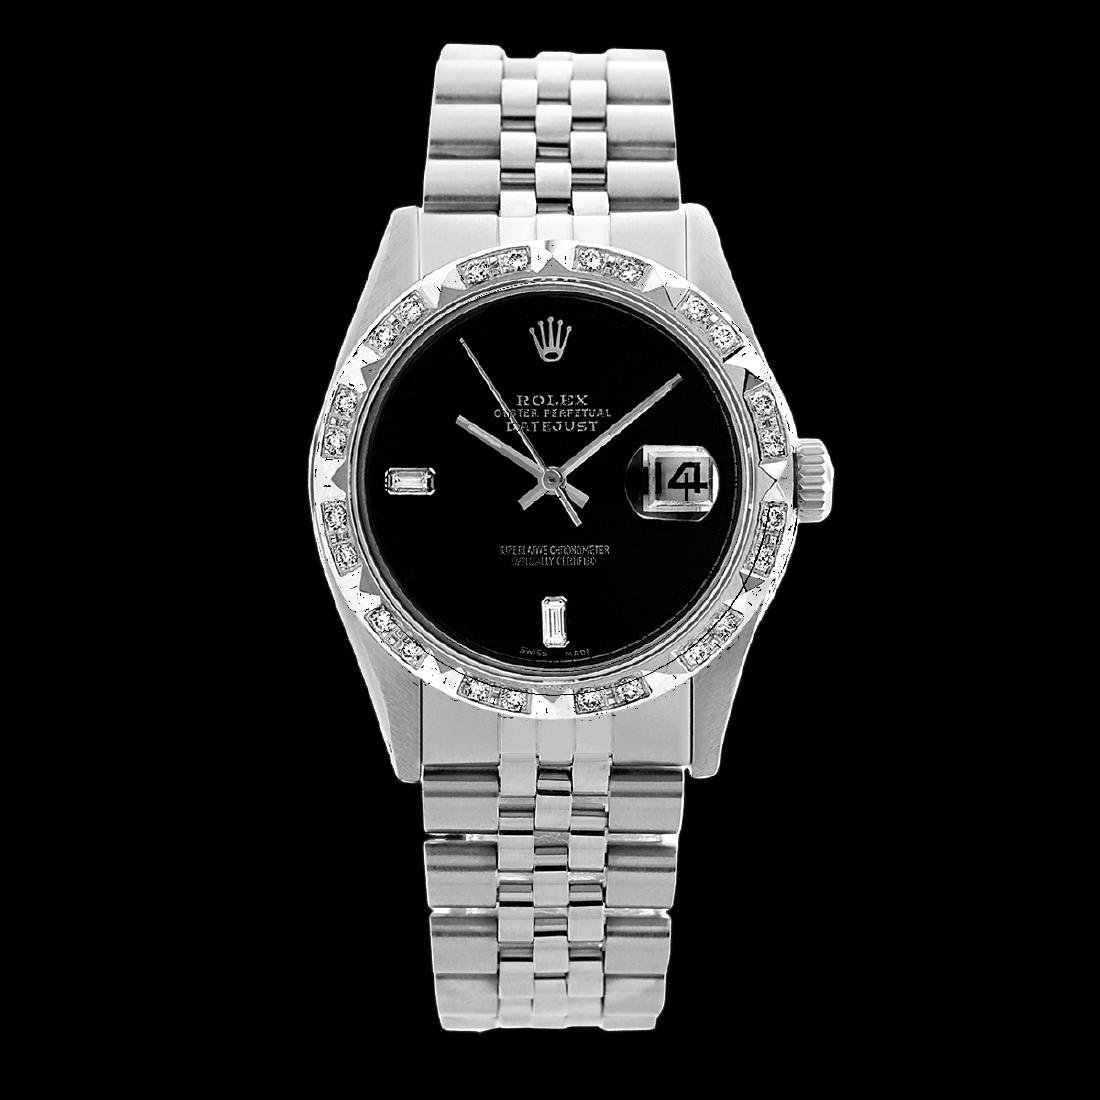 Rolex Ladies Stainless Steel, Diam Dial with Pyrimid - 2